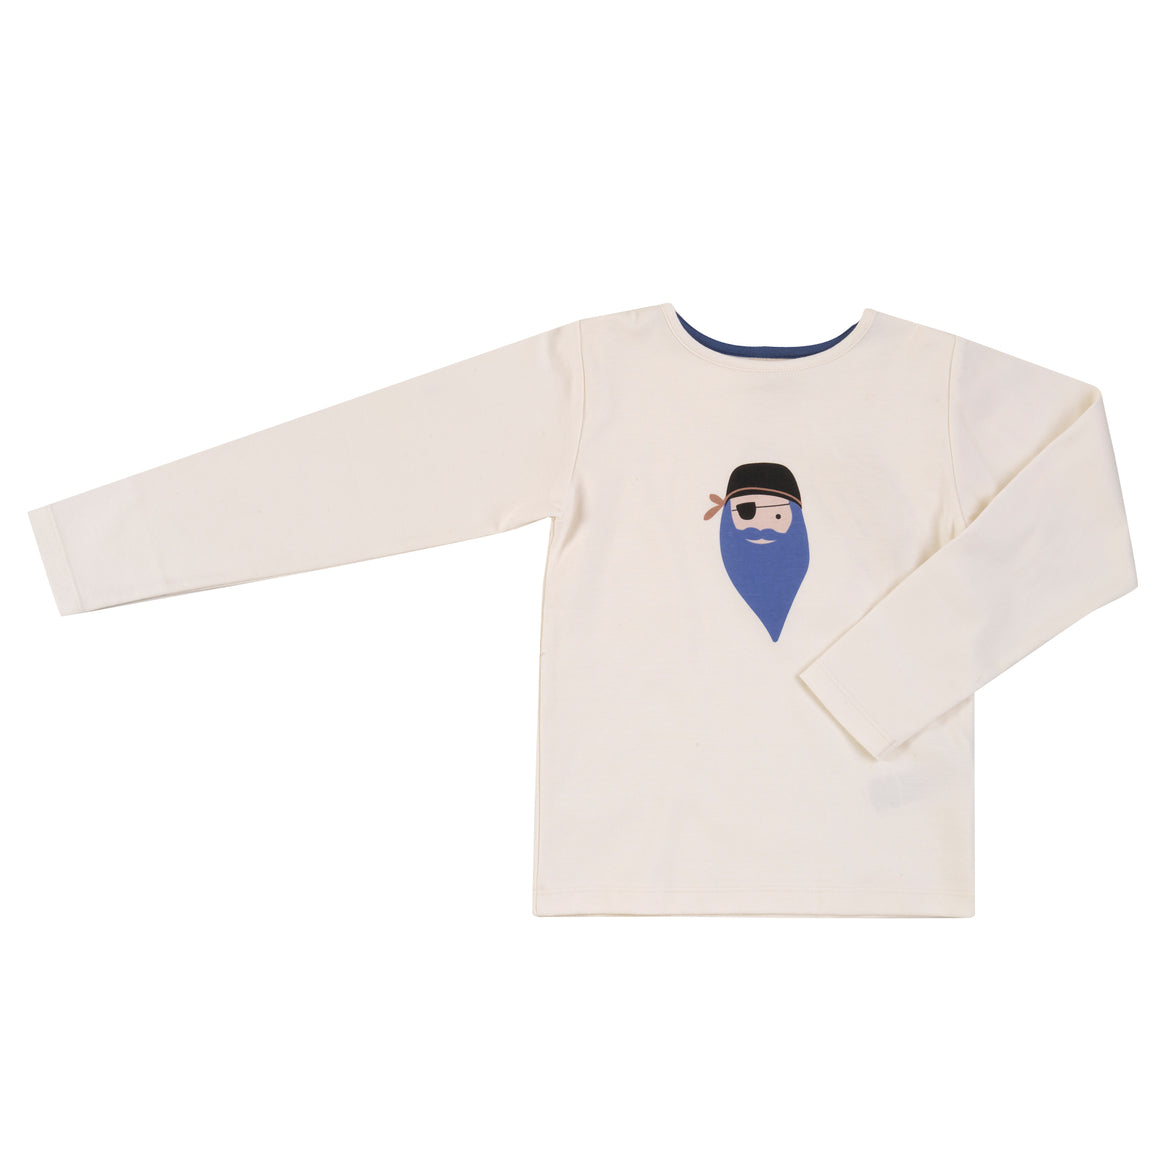 Long Sleeve T-shirt (Single Print) in Bluebeard Pirate